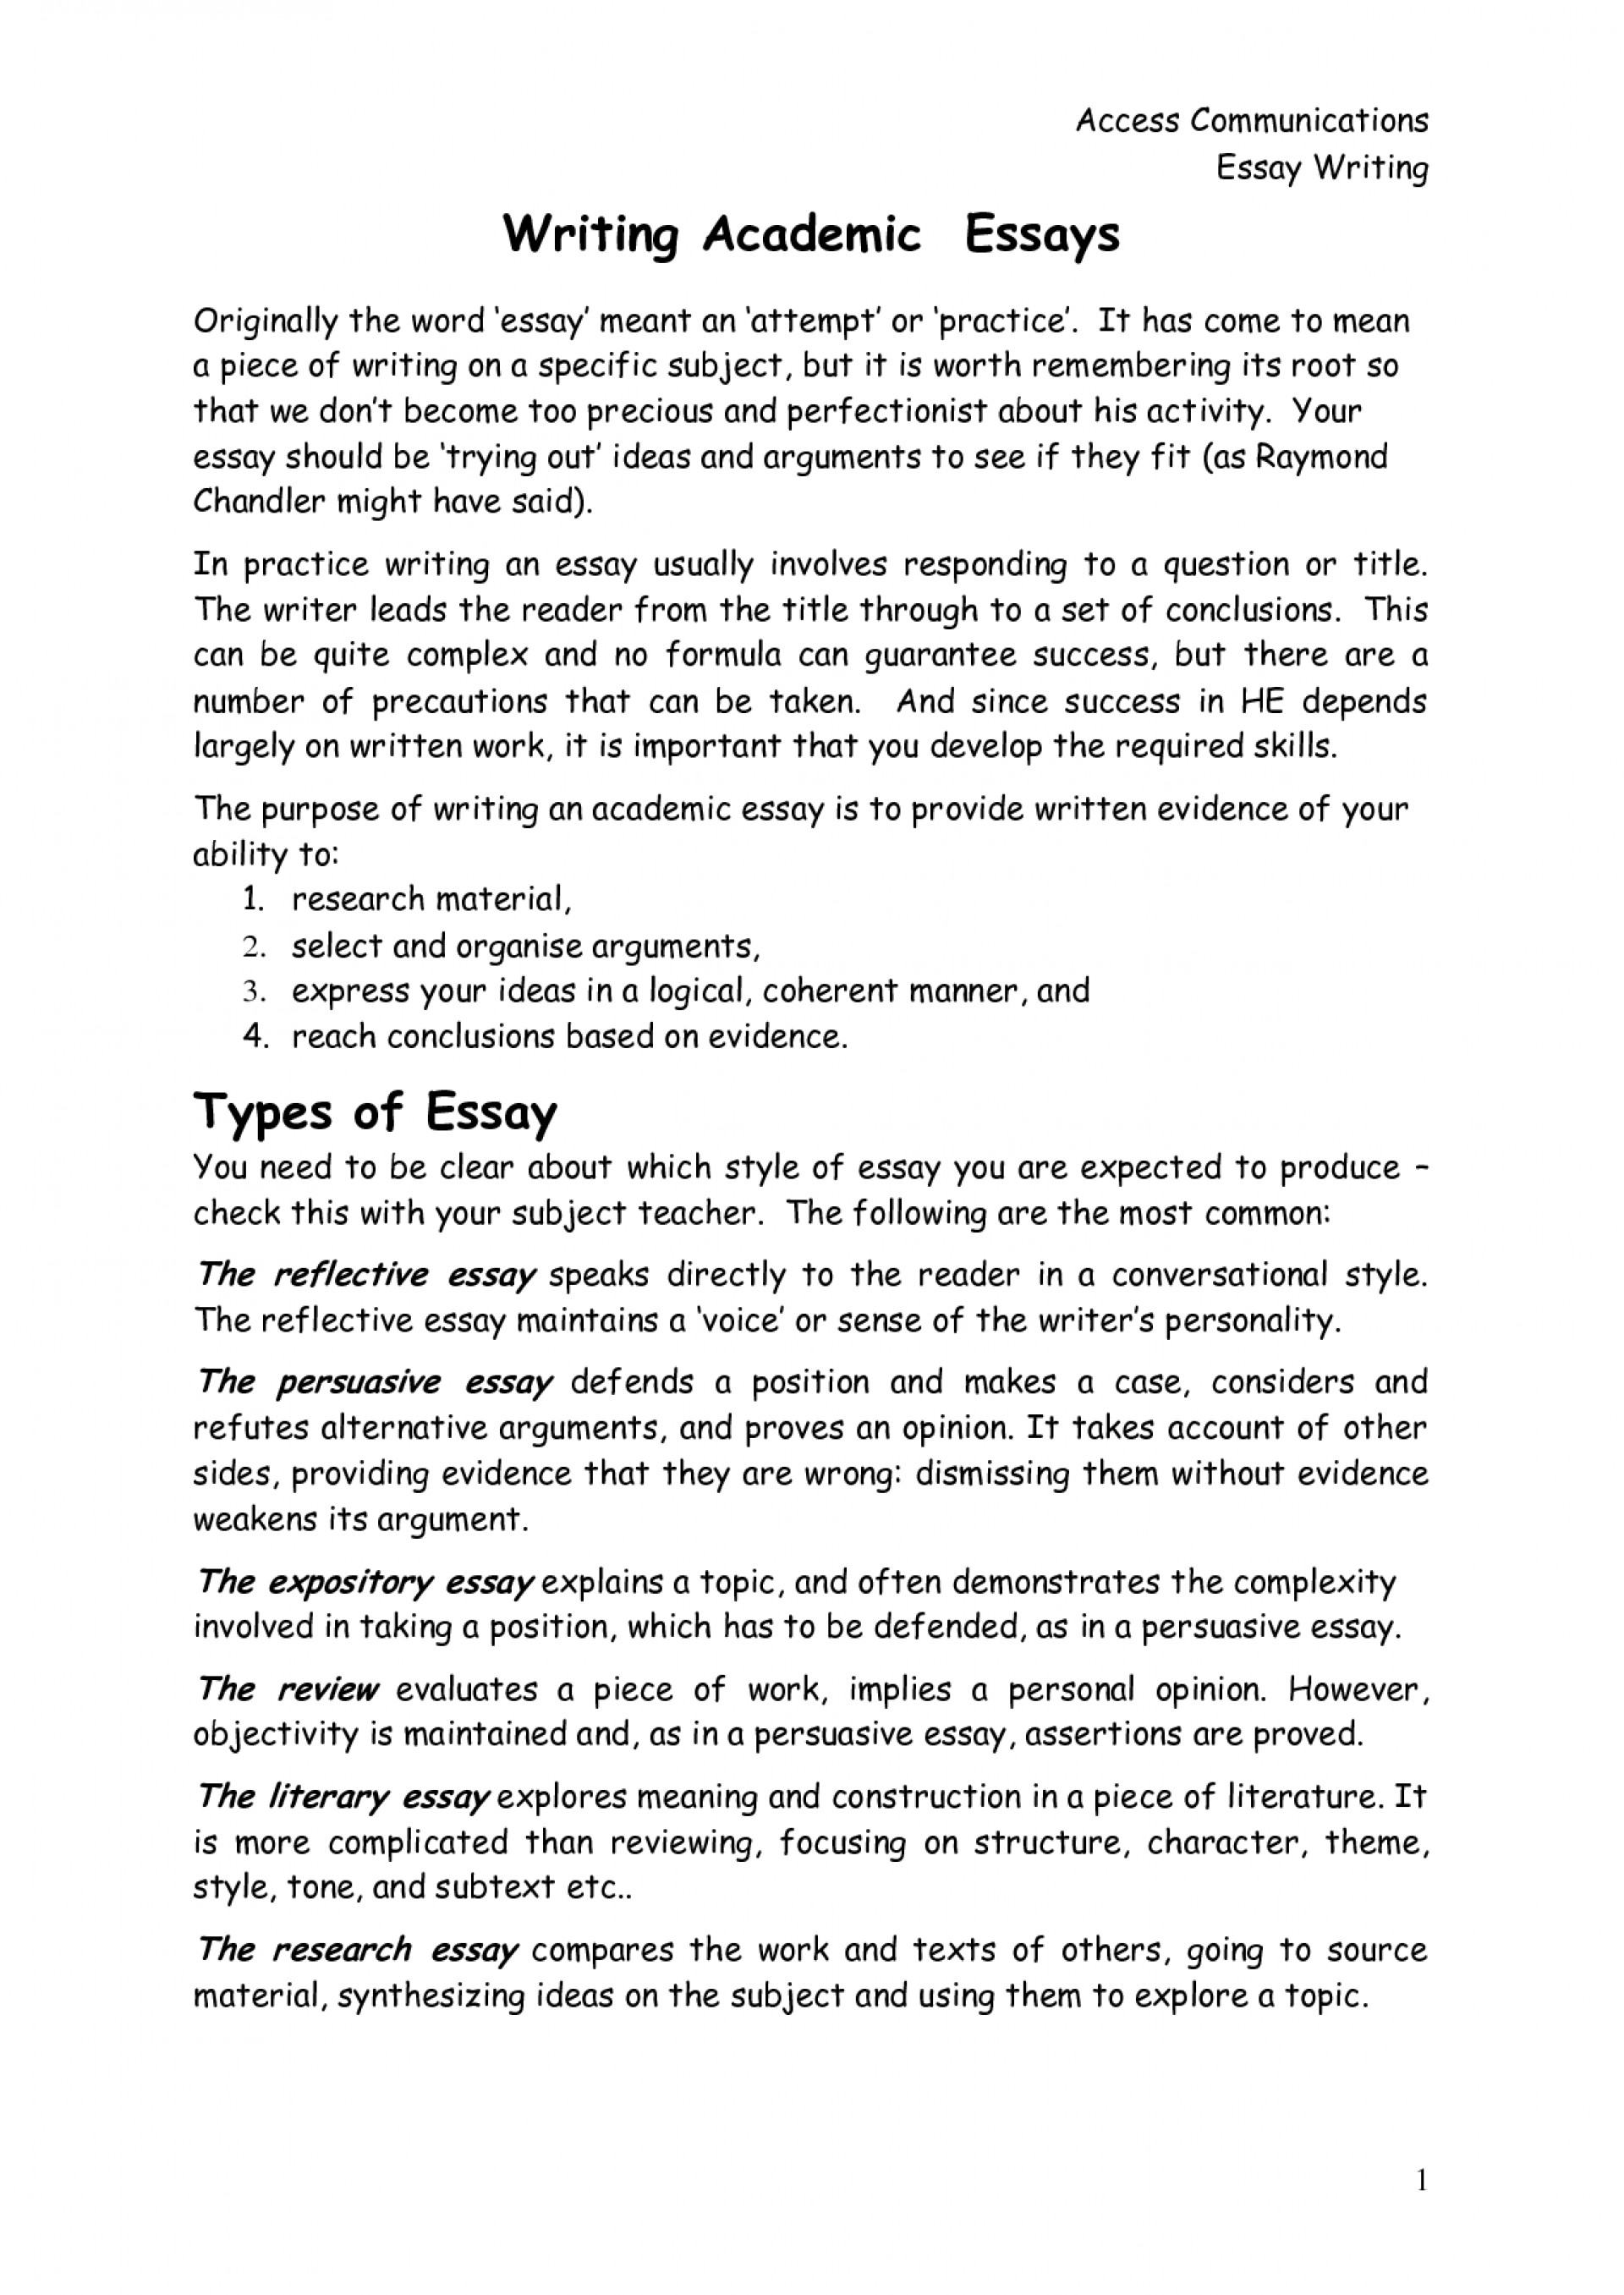 016 Reflective Essay On Academic Writings Beautiful Examples About Life Pdf Apa 1920